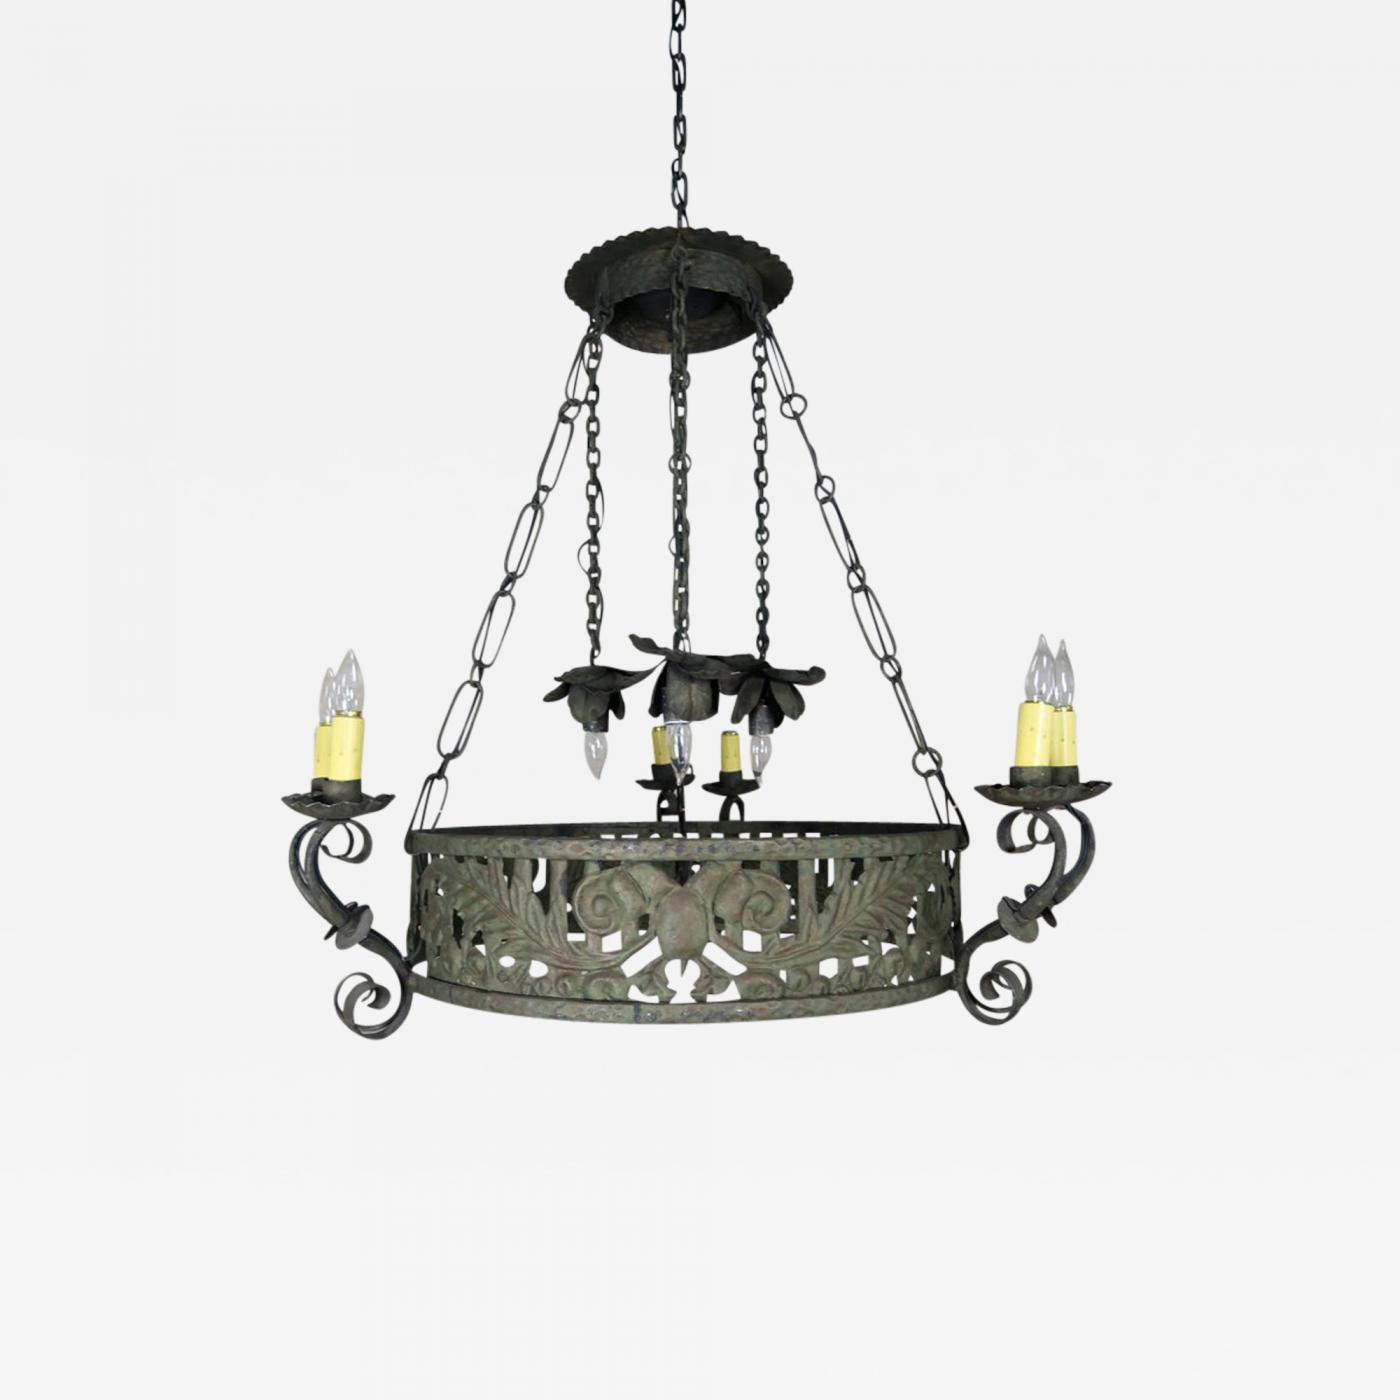 19th c spanish wrought iron chandelier listings furniture lighting chandeliers and pendants 19th c spanish wrought iron chandelier aloadofball Image collections